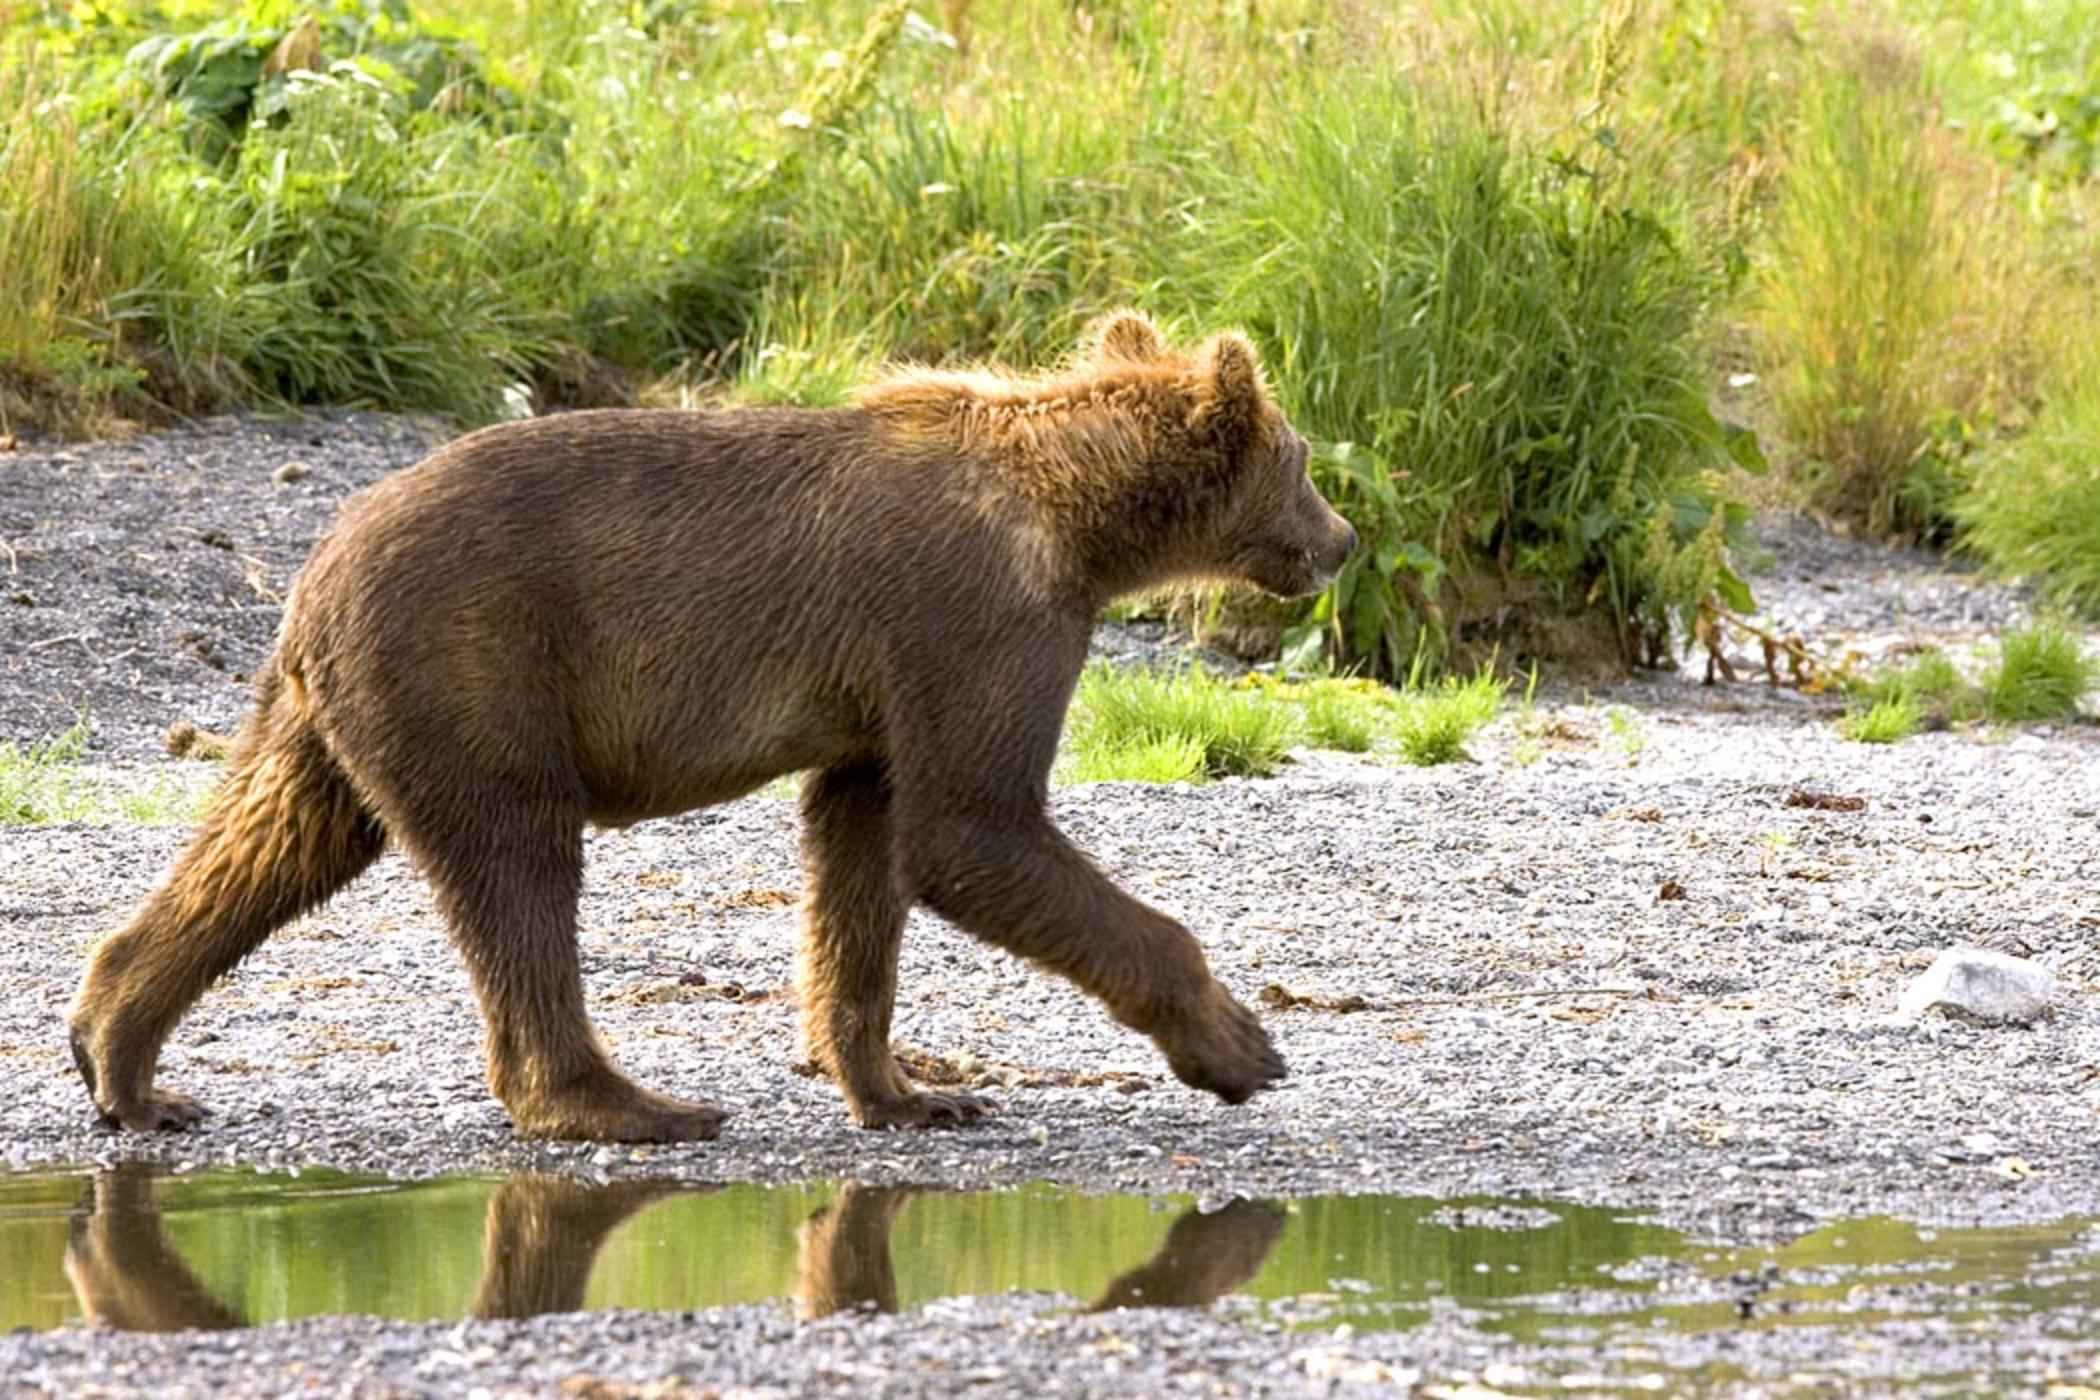 Grizzly bear walking - photo#4